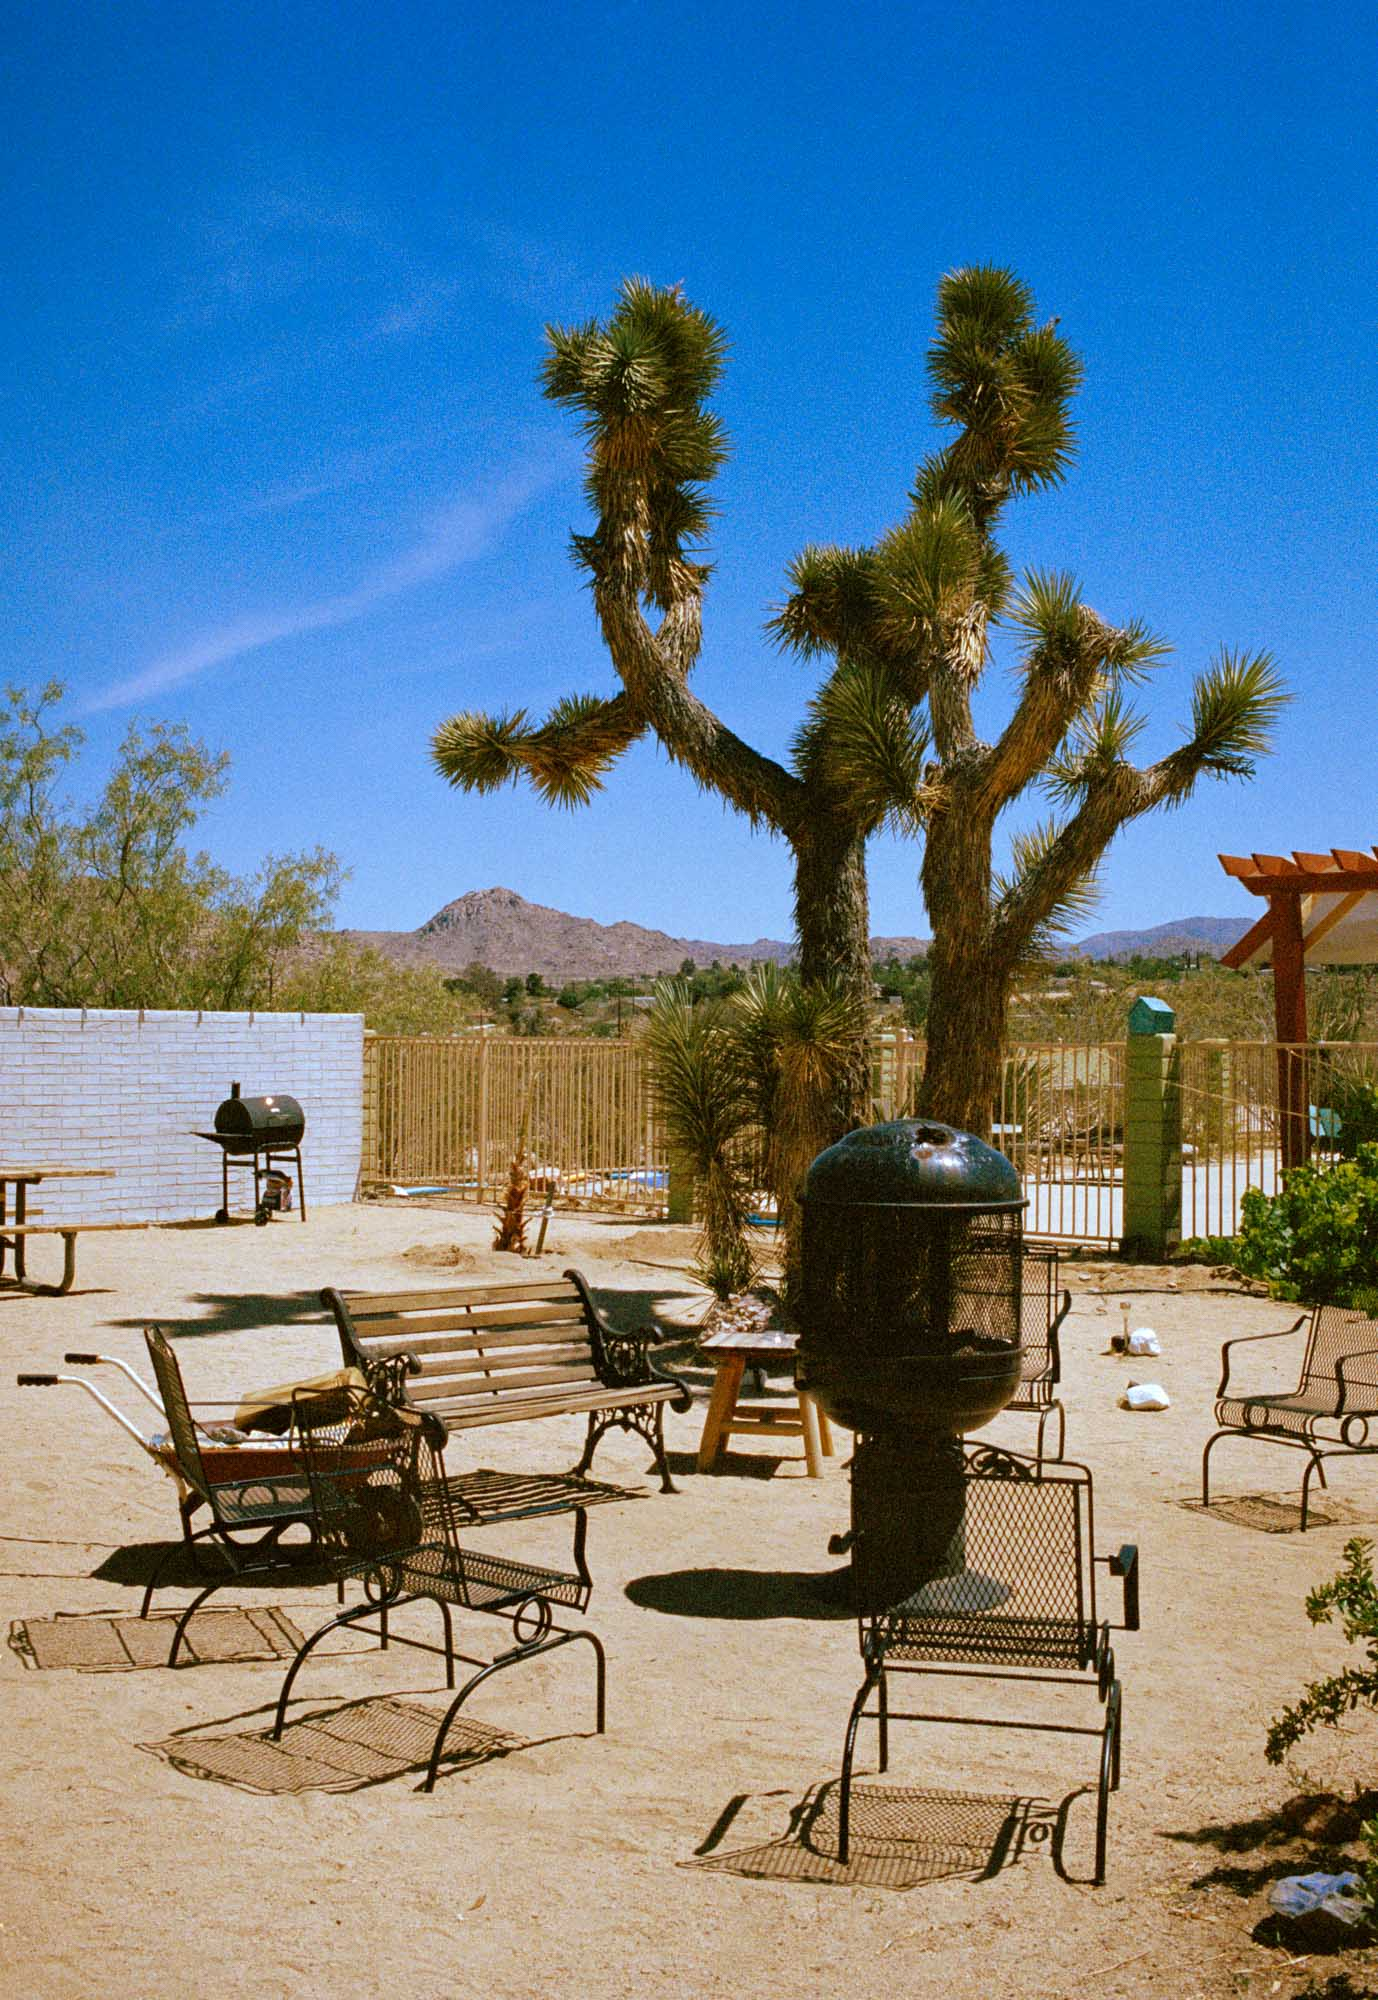 A photographic print of the joshua treem motel california, swimimg pool at joshua tree's Artwork, Prints wall art California Photographic prints Ocean Palm Springs Framed artwork, Photography,  Film photography, Vintage photo style,  Interior design, beach, Buy Art, photography art, Joshua tree print, Joshua tree, buy art, Prints for sale, art prints, color photography